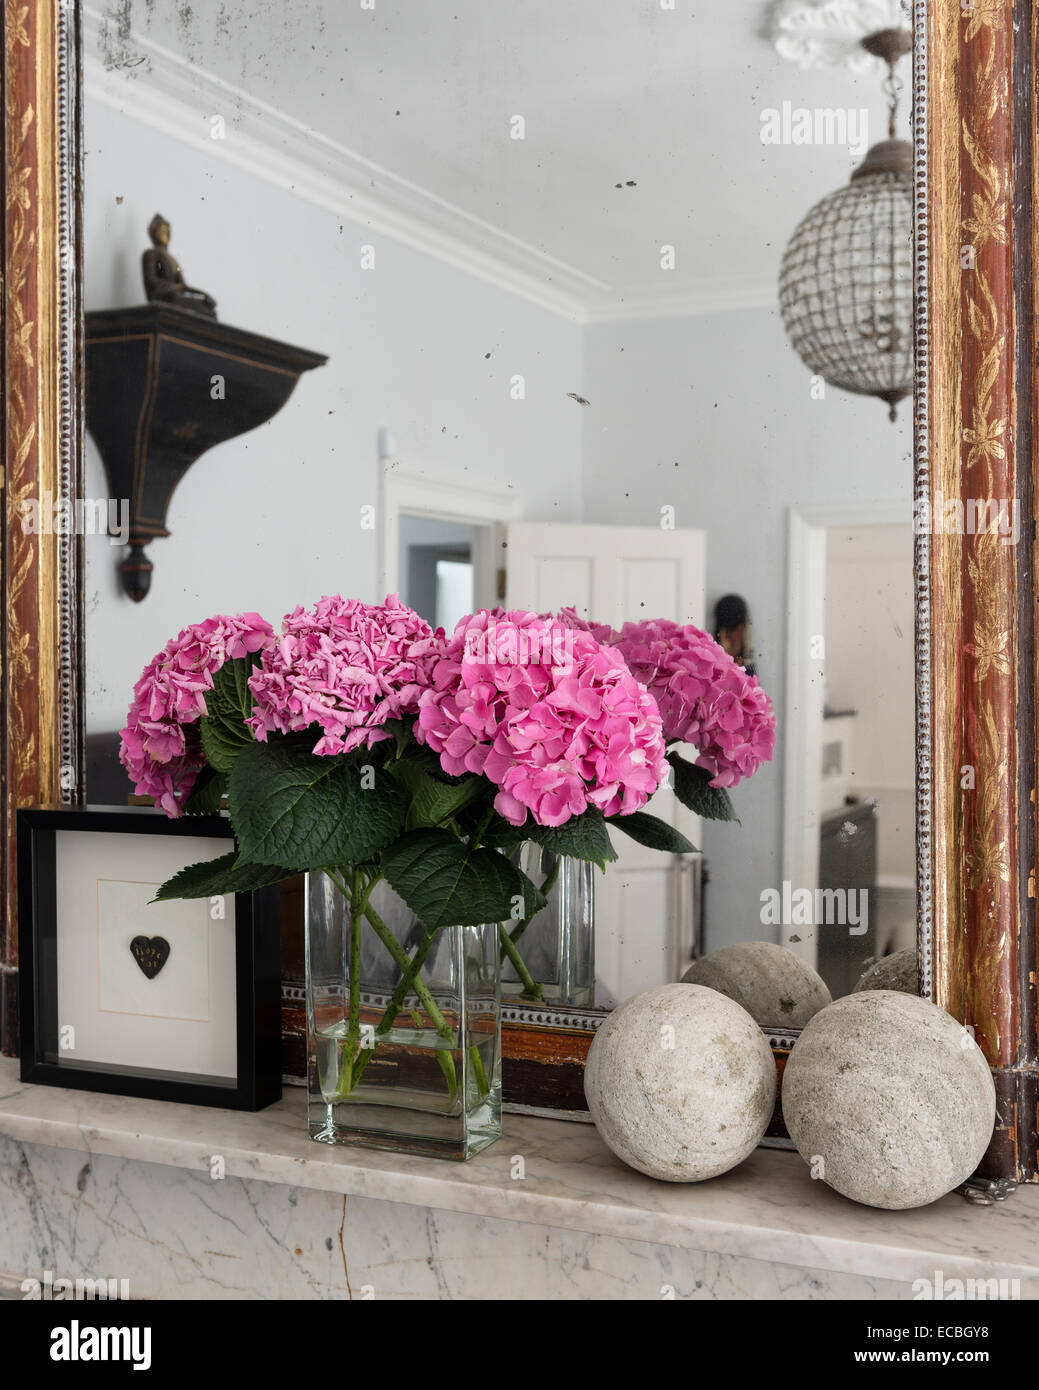 Hydrangeas in vase on mantelpiece with gilt framed mirror - Stock Image